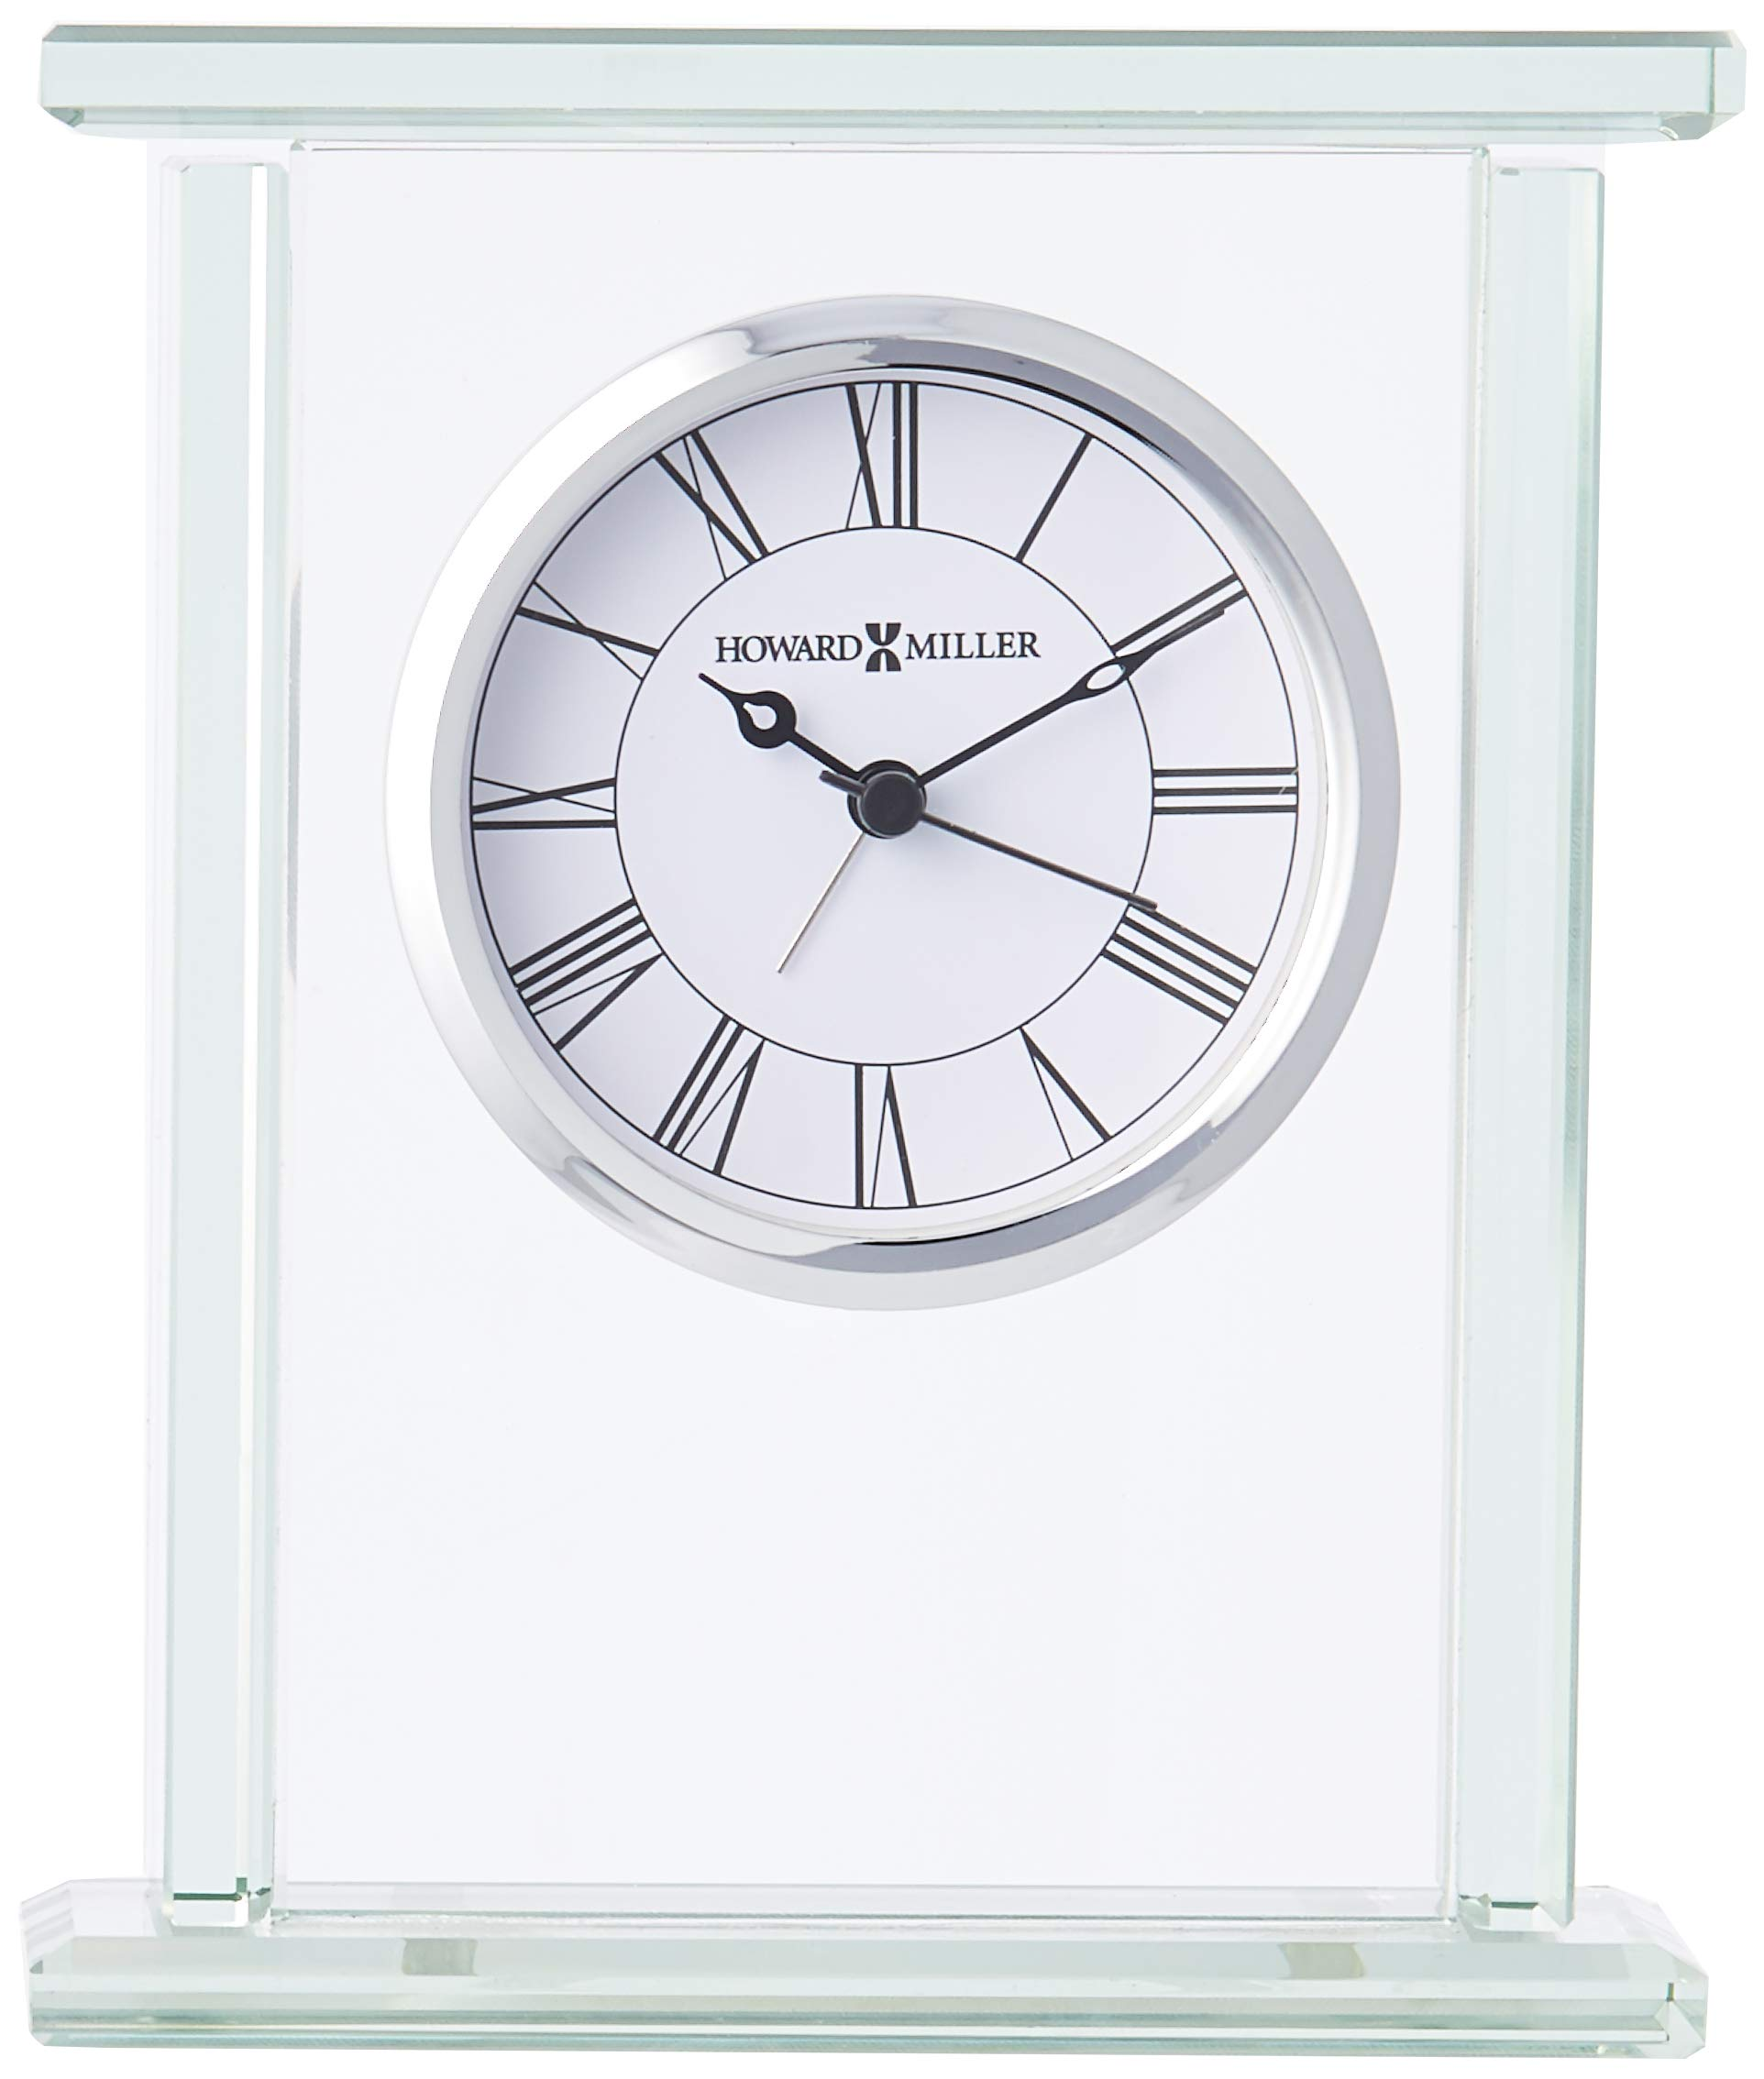 """Howard Miller 645-643 Cooper Table Clock by - Glass carriage alarm clock is constructed of .375"""" beveled glass panels. The dial offers a white background with black Roman numerals beneath glass and a polished chrome finished bezel. The hour, minute and seconds hands are black, while the alarm hand is silver. Quartz, battery-operated alarm movement includes one AA sized battery. - clocks, bedroom-decor, bedroom - 71F 1YA U6L -"""